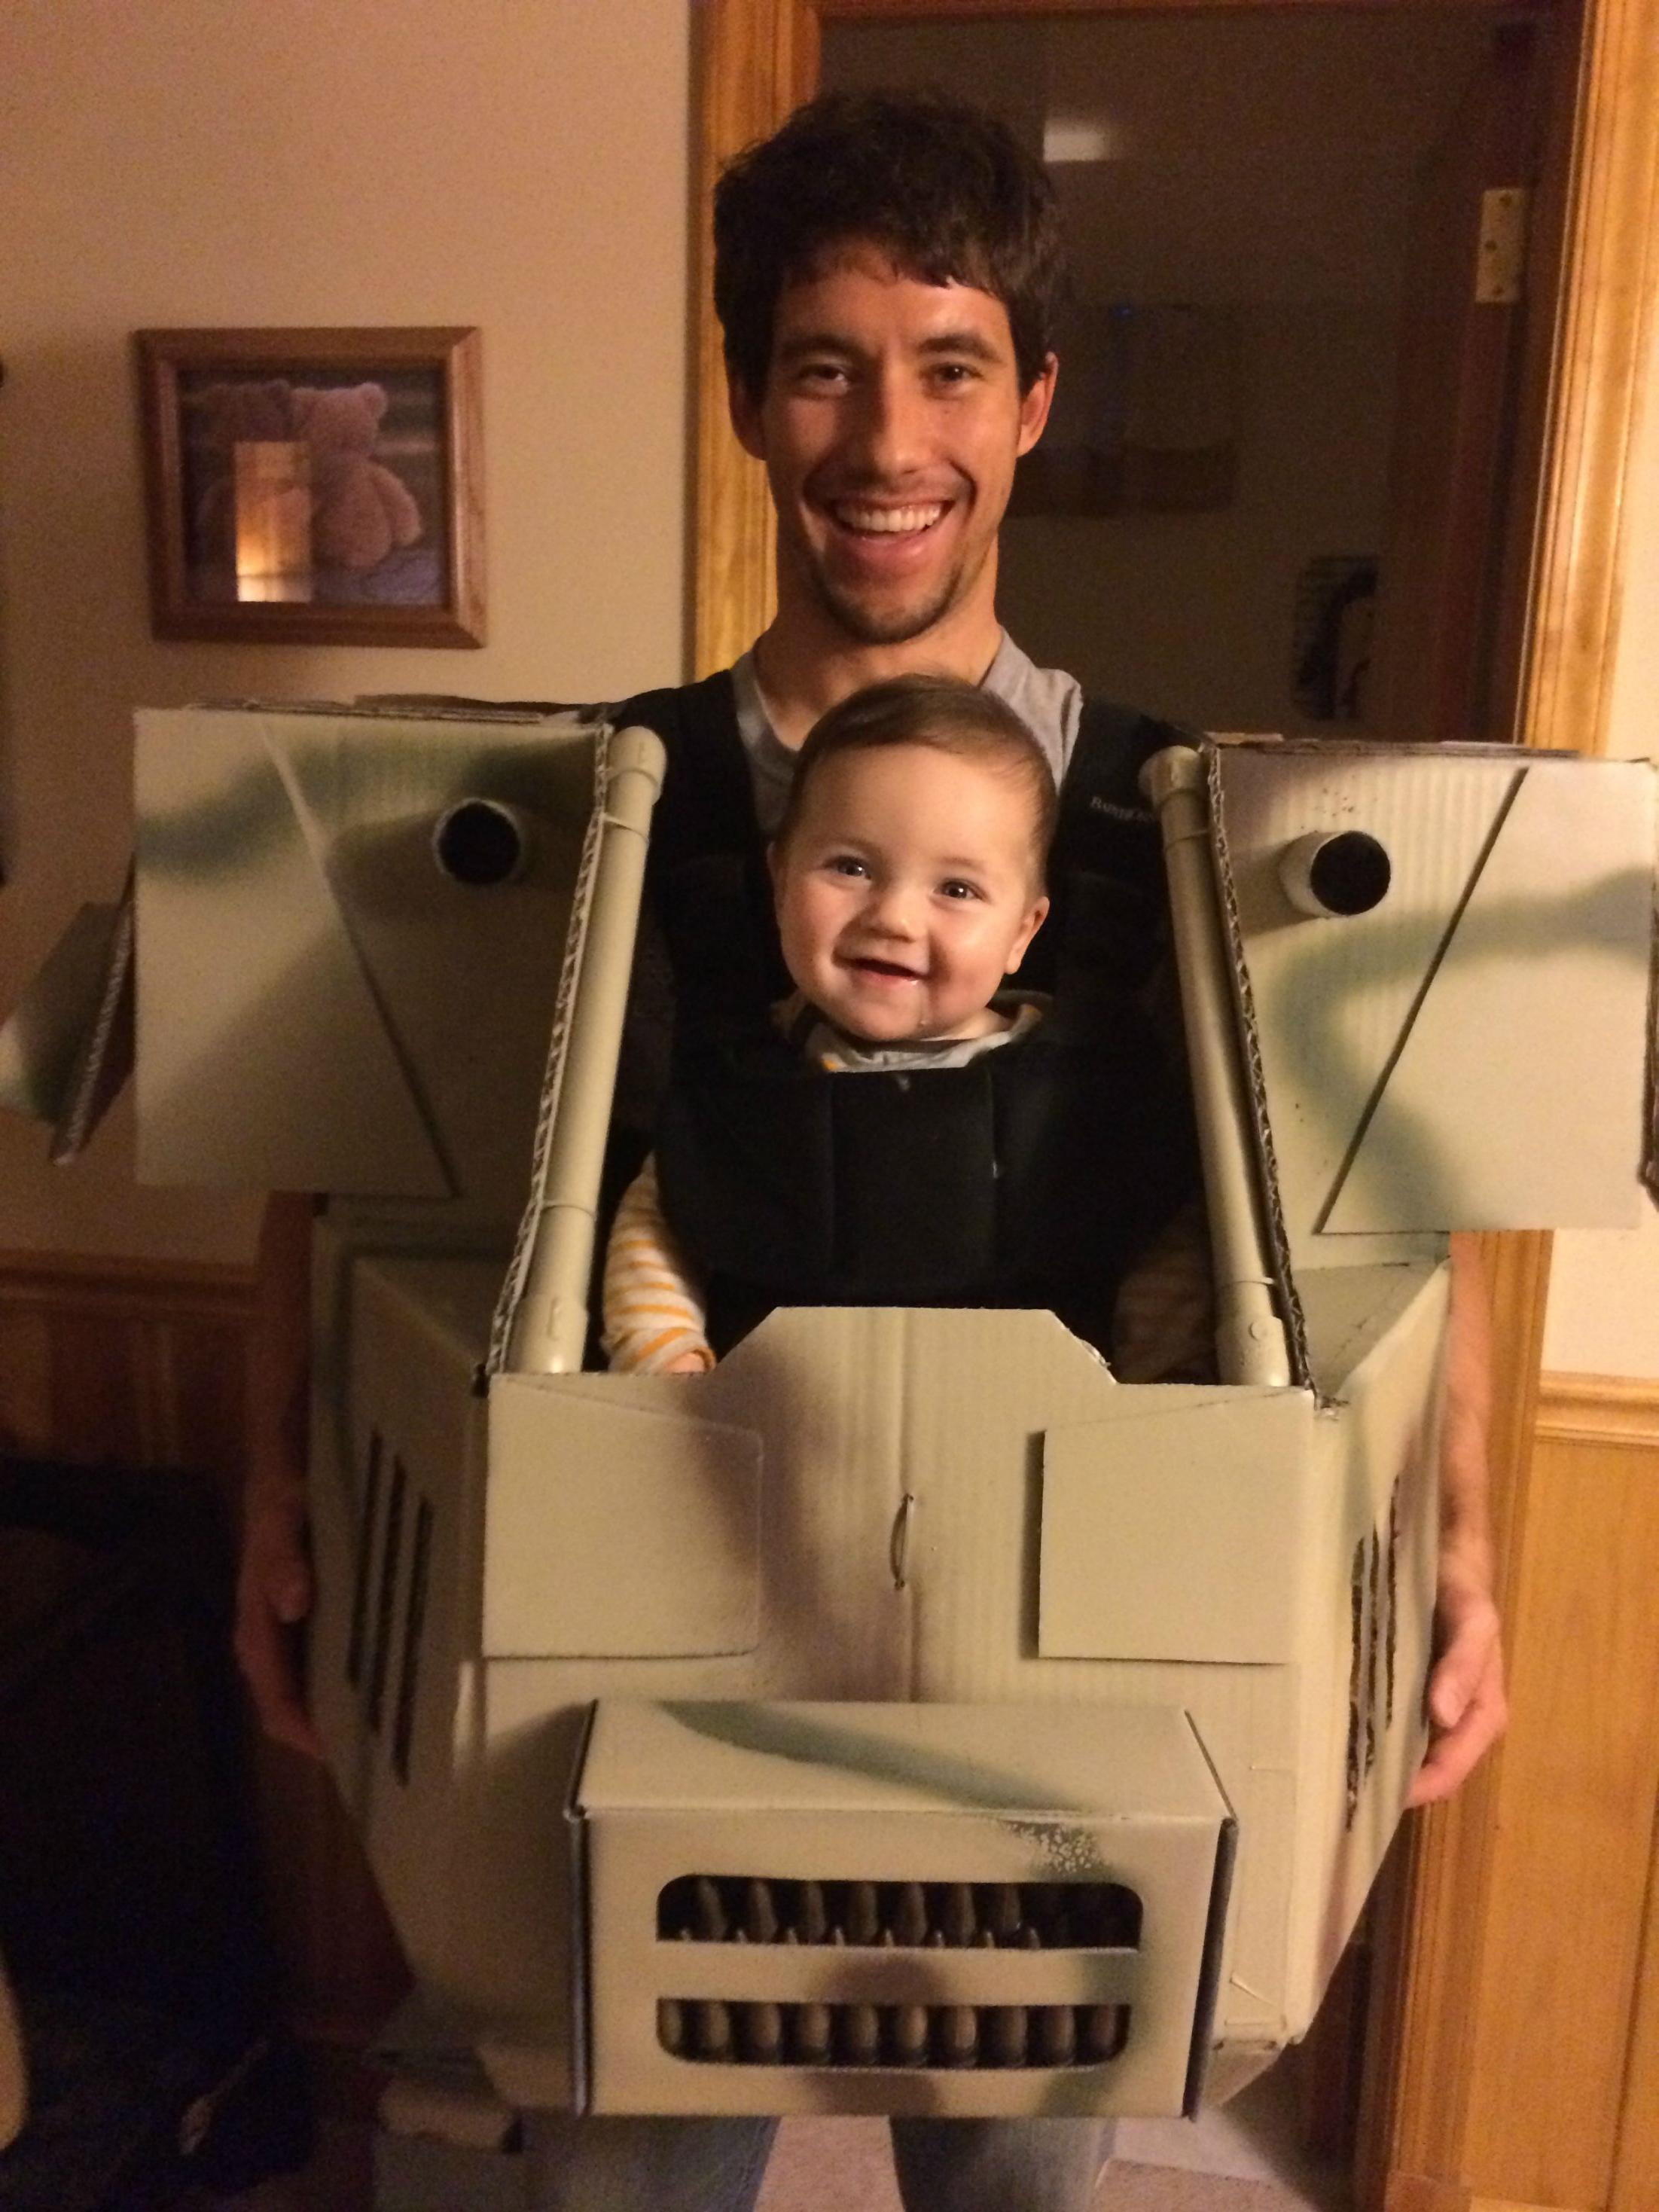 this father & son halloween costume wins best costume of 2014